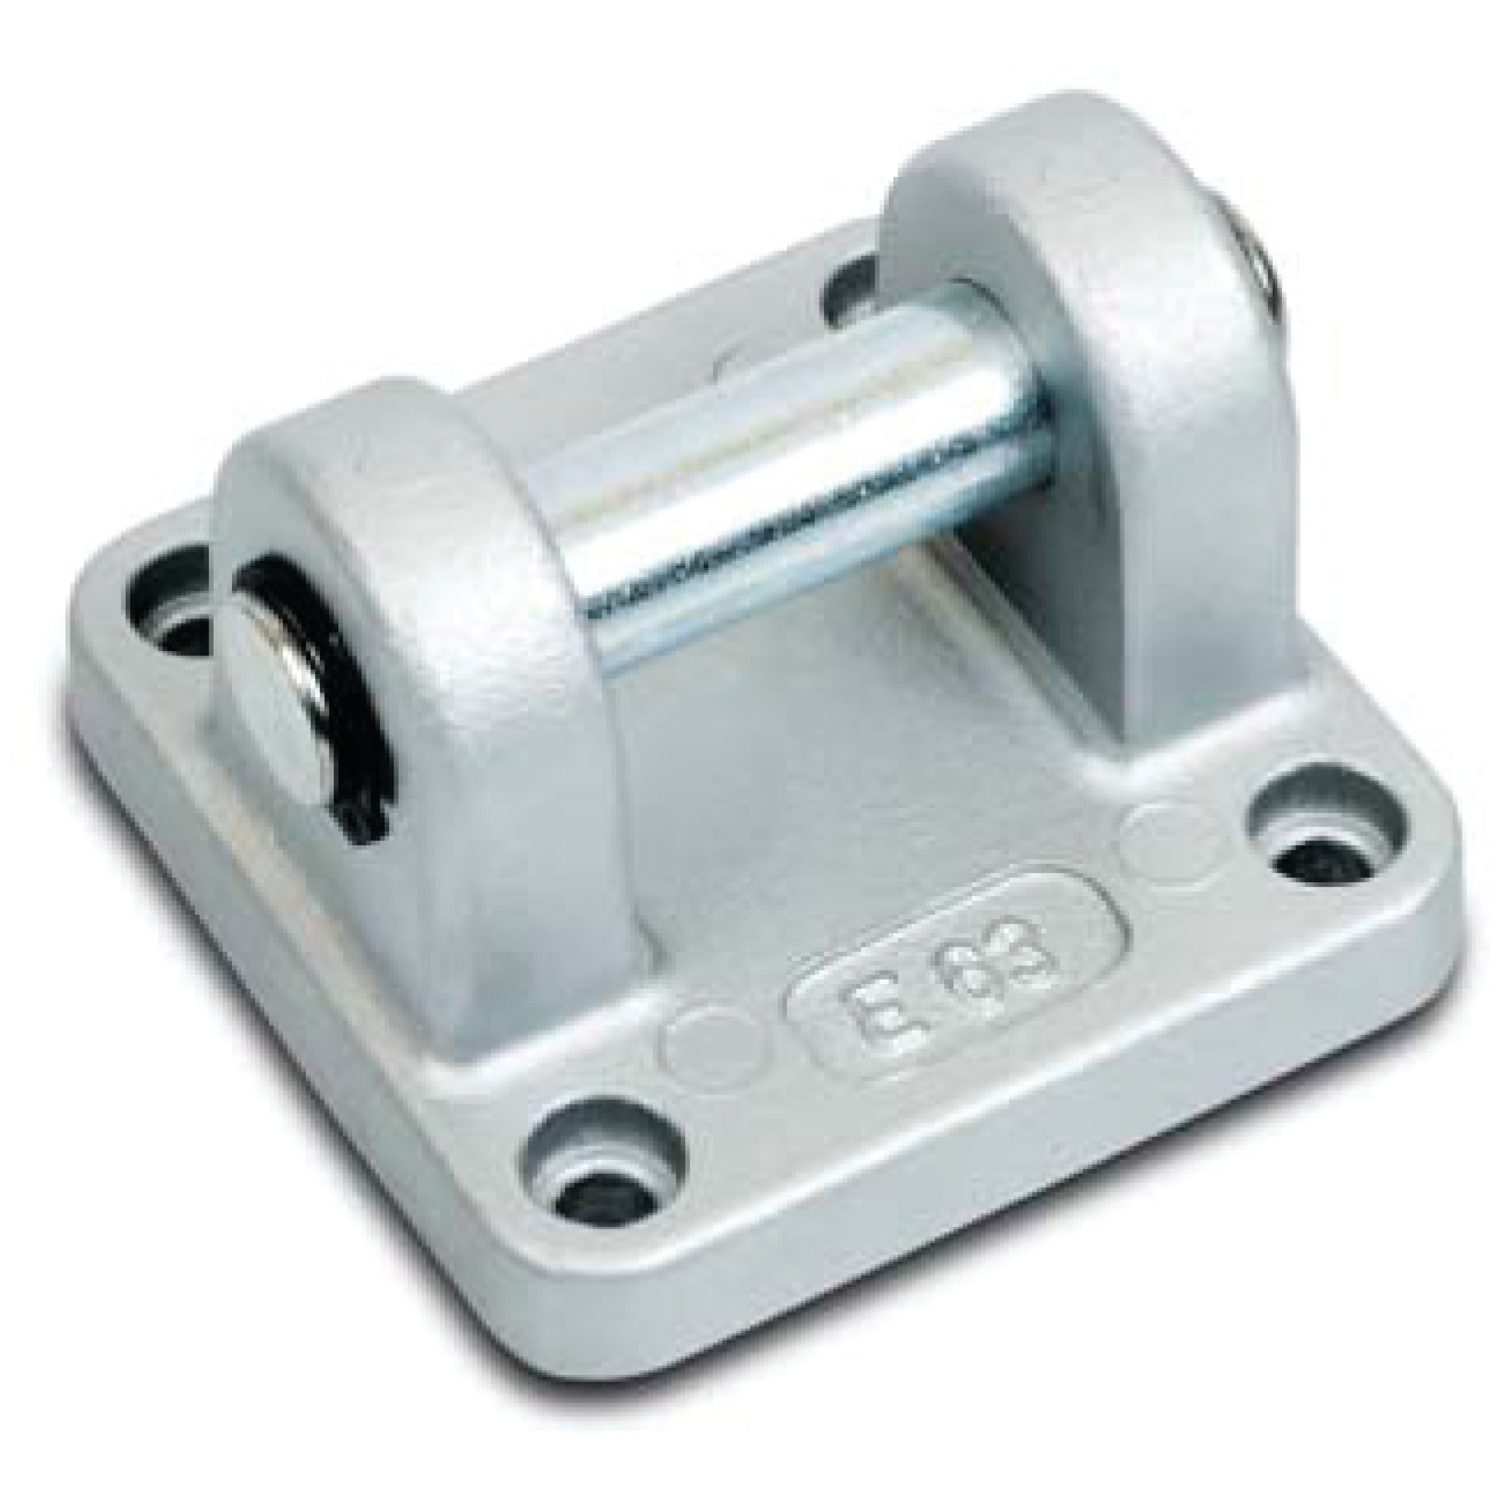 L4810 - Air Cylinder Mounts - CETOP Series